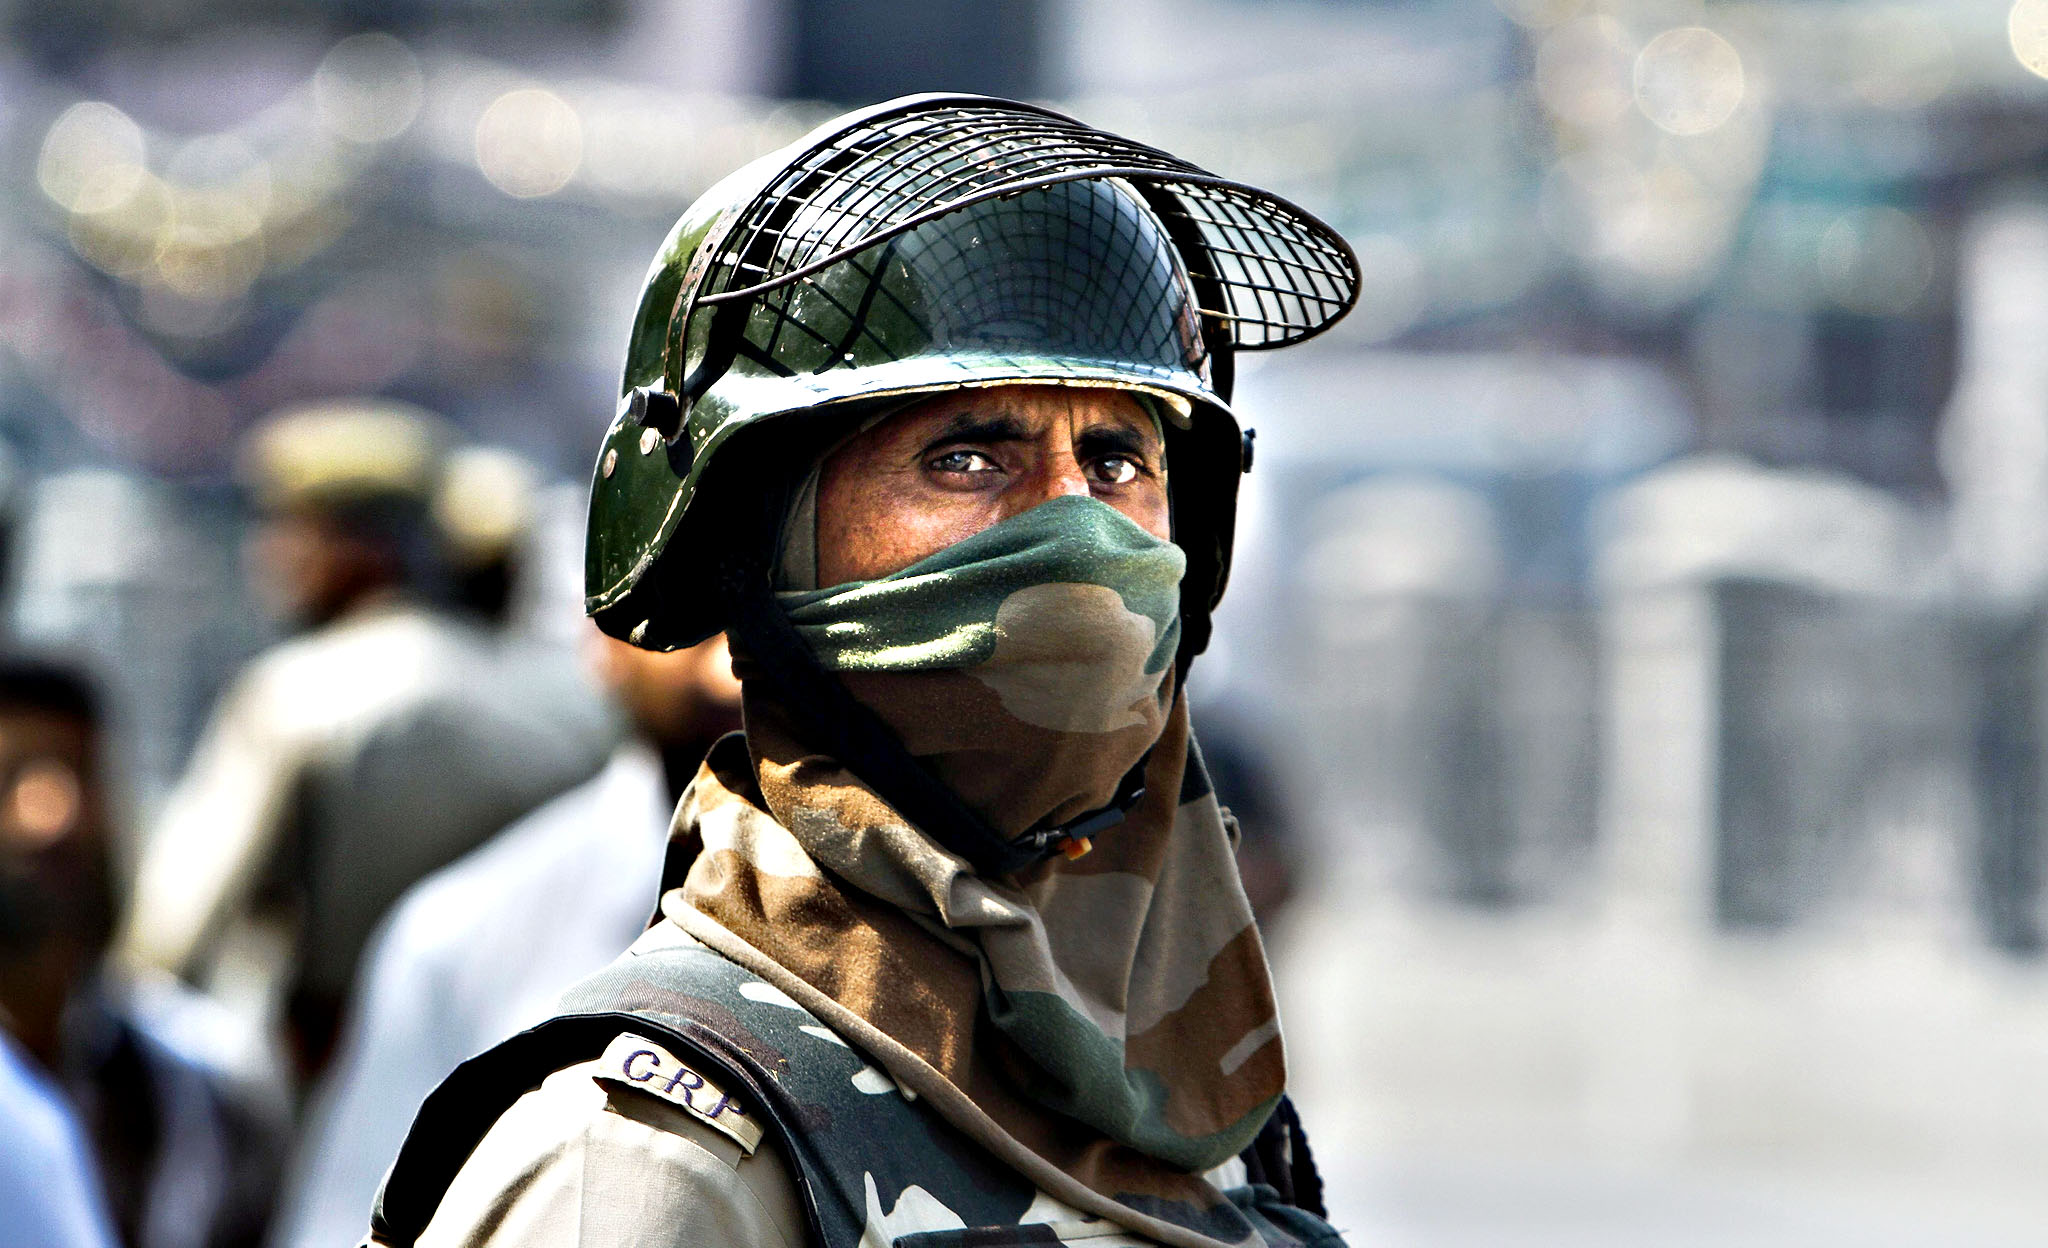 An Indian paramilitary soldier stands guard during a surprise search operation in the business hub of Lal Chowk in Srinagar, the summer capital of Indian Kashmir, 07 October 2013 Indian Army officiating Brigadier General Staff, Sanjay Mitra said a major infiltration bid by militants is underway in the Keran sector along the Line of Control, the de facto border which divides Kashmir into Indian and Pakistan administered parts.